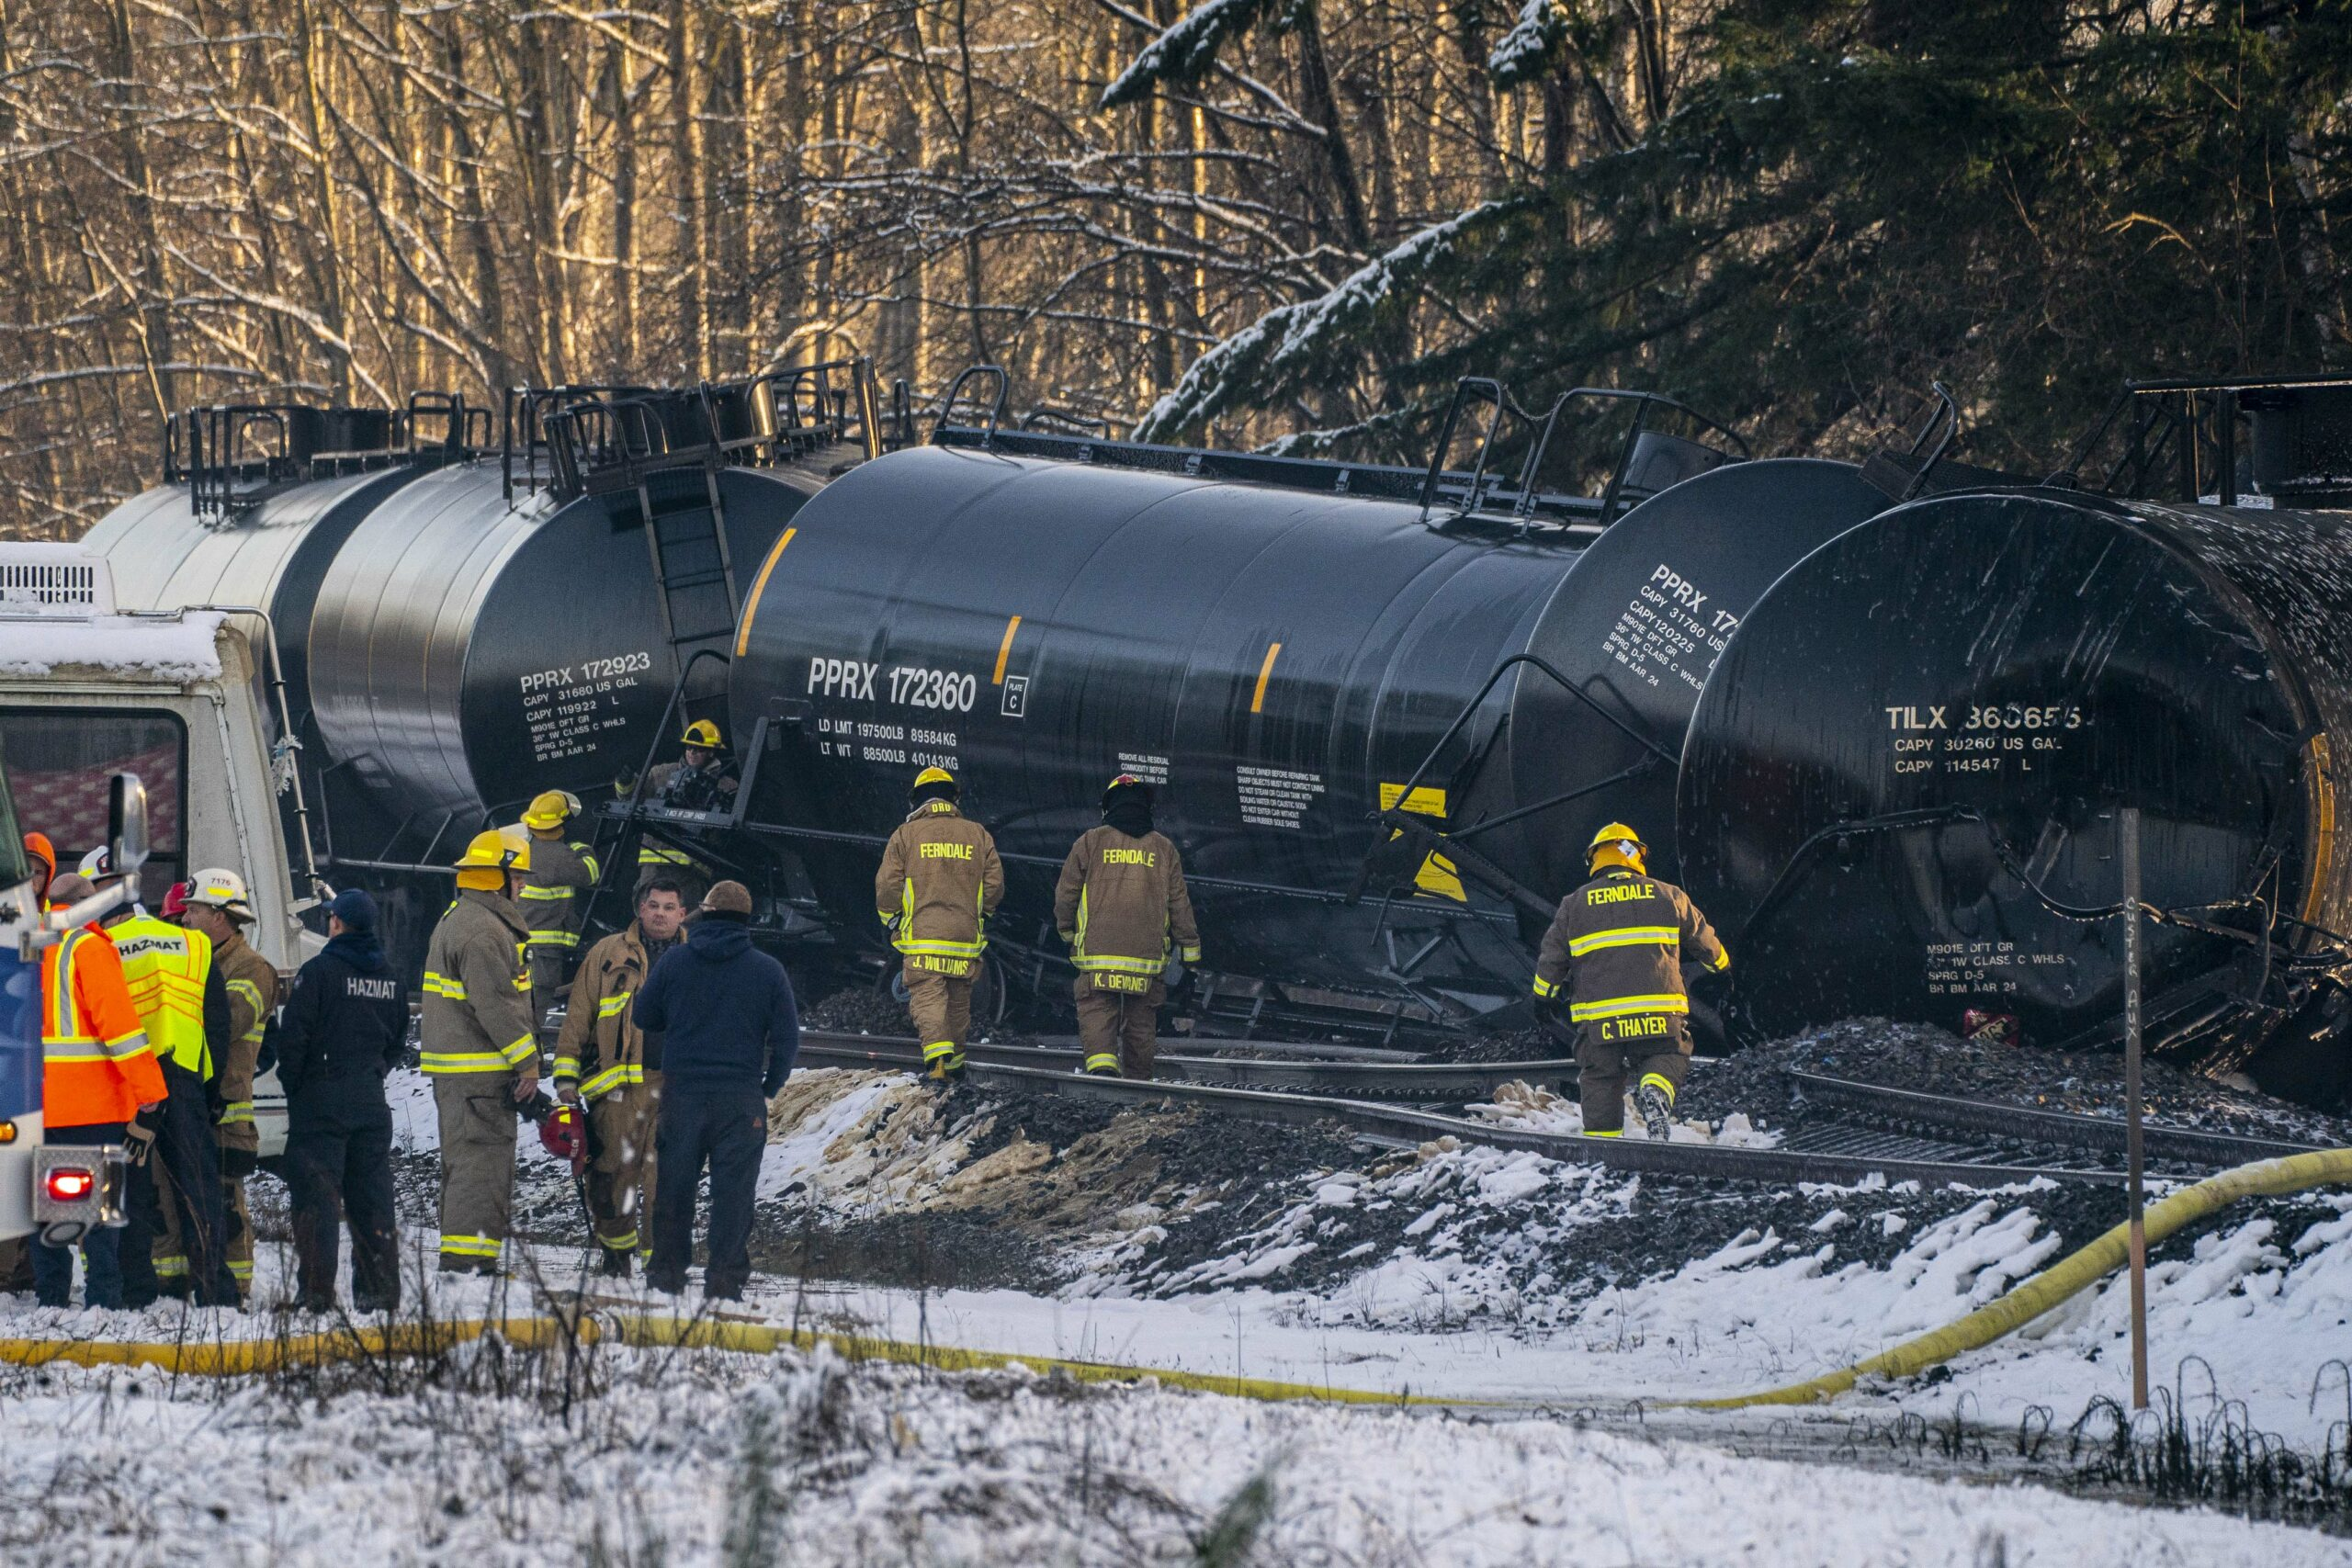 Emergency response personnel work at the scene of a derailed train carrying crude oil on Dec. 22, 2020 in Custer, Washington. Credit: David Ryder/Getty Images